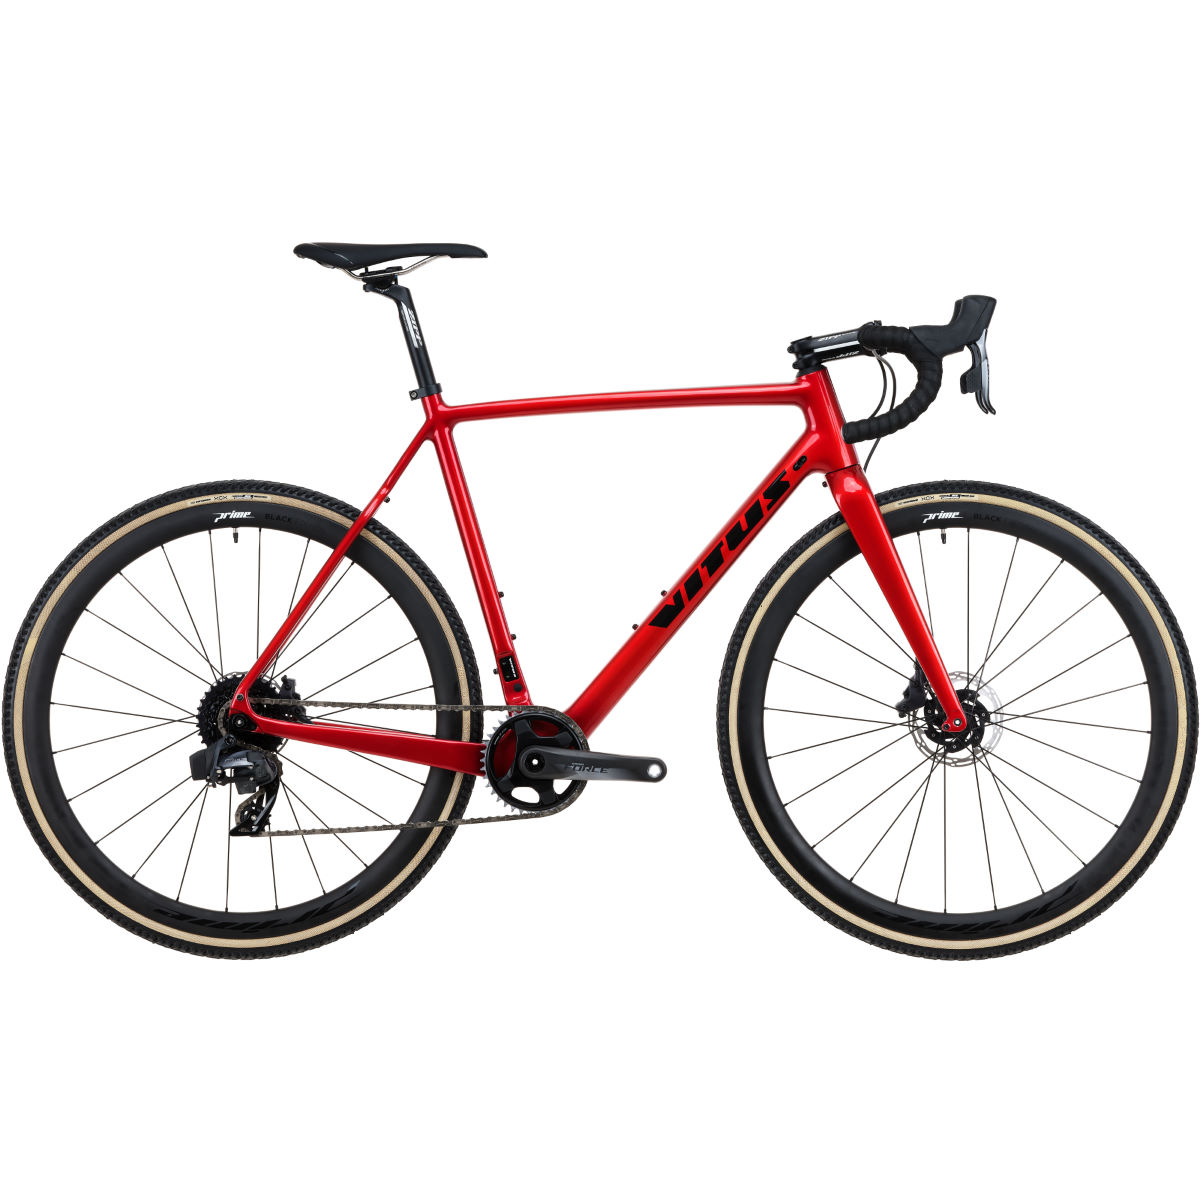 Image of Vélo de cyclo-cross Vitus Energie CRX eTap AXS (Force, 2020) - X-Small